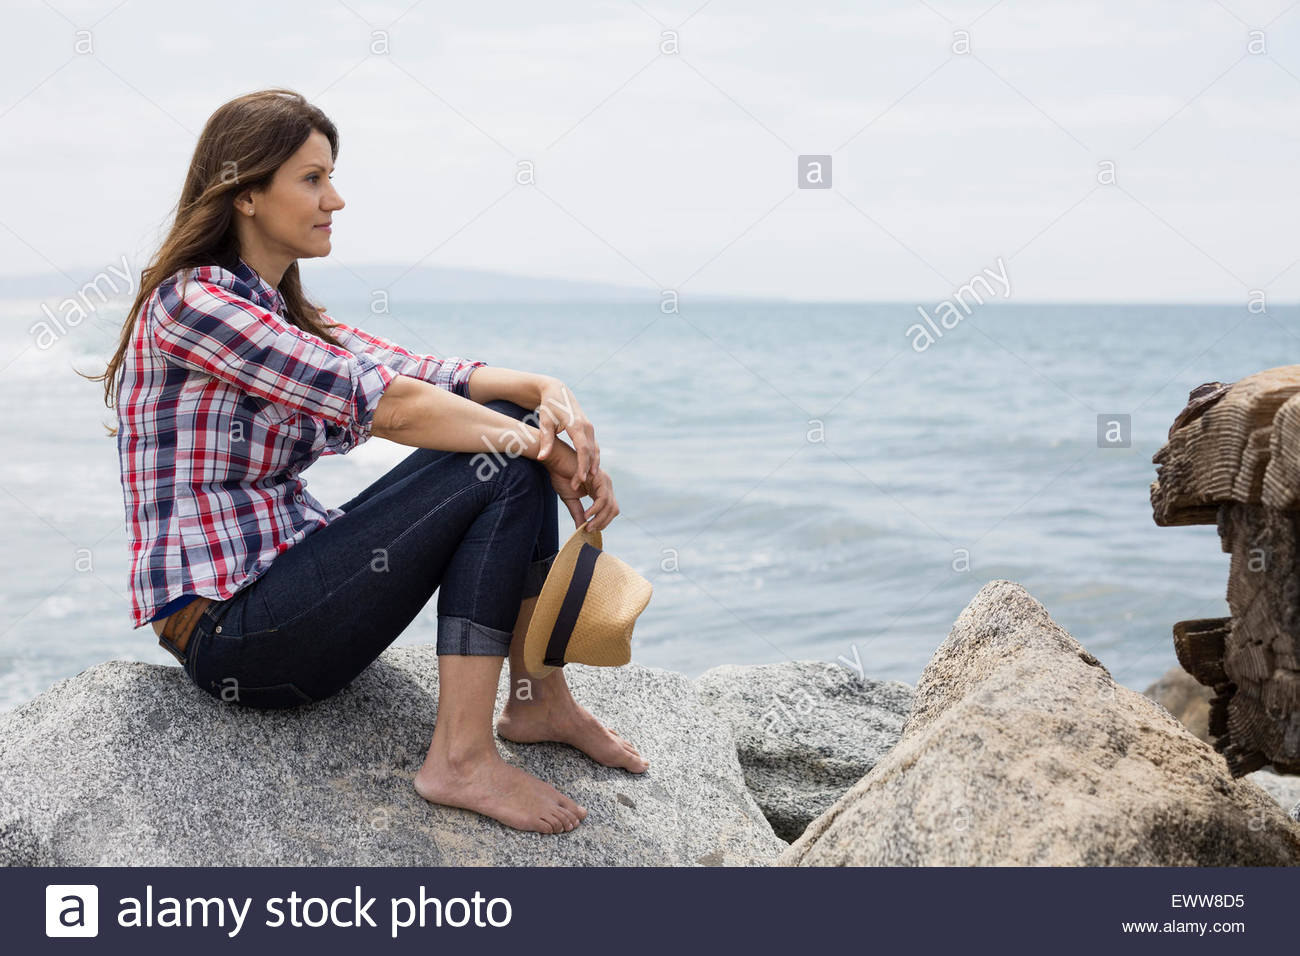 Pensive barefoot woman sitting on rocks at ocean - Stock Image